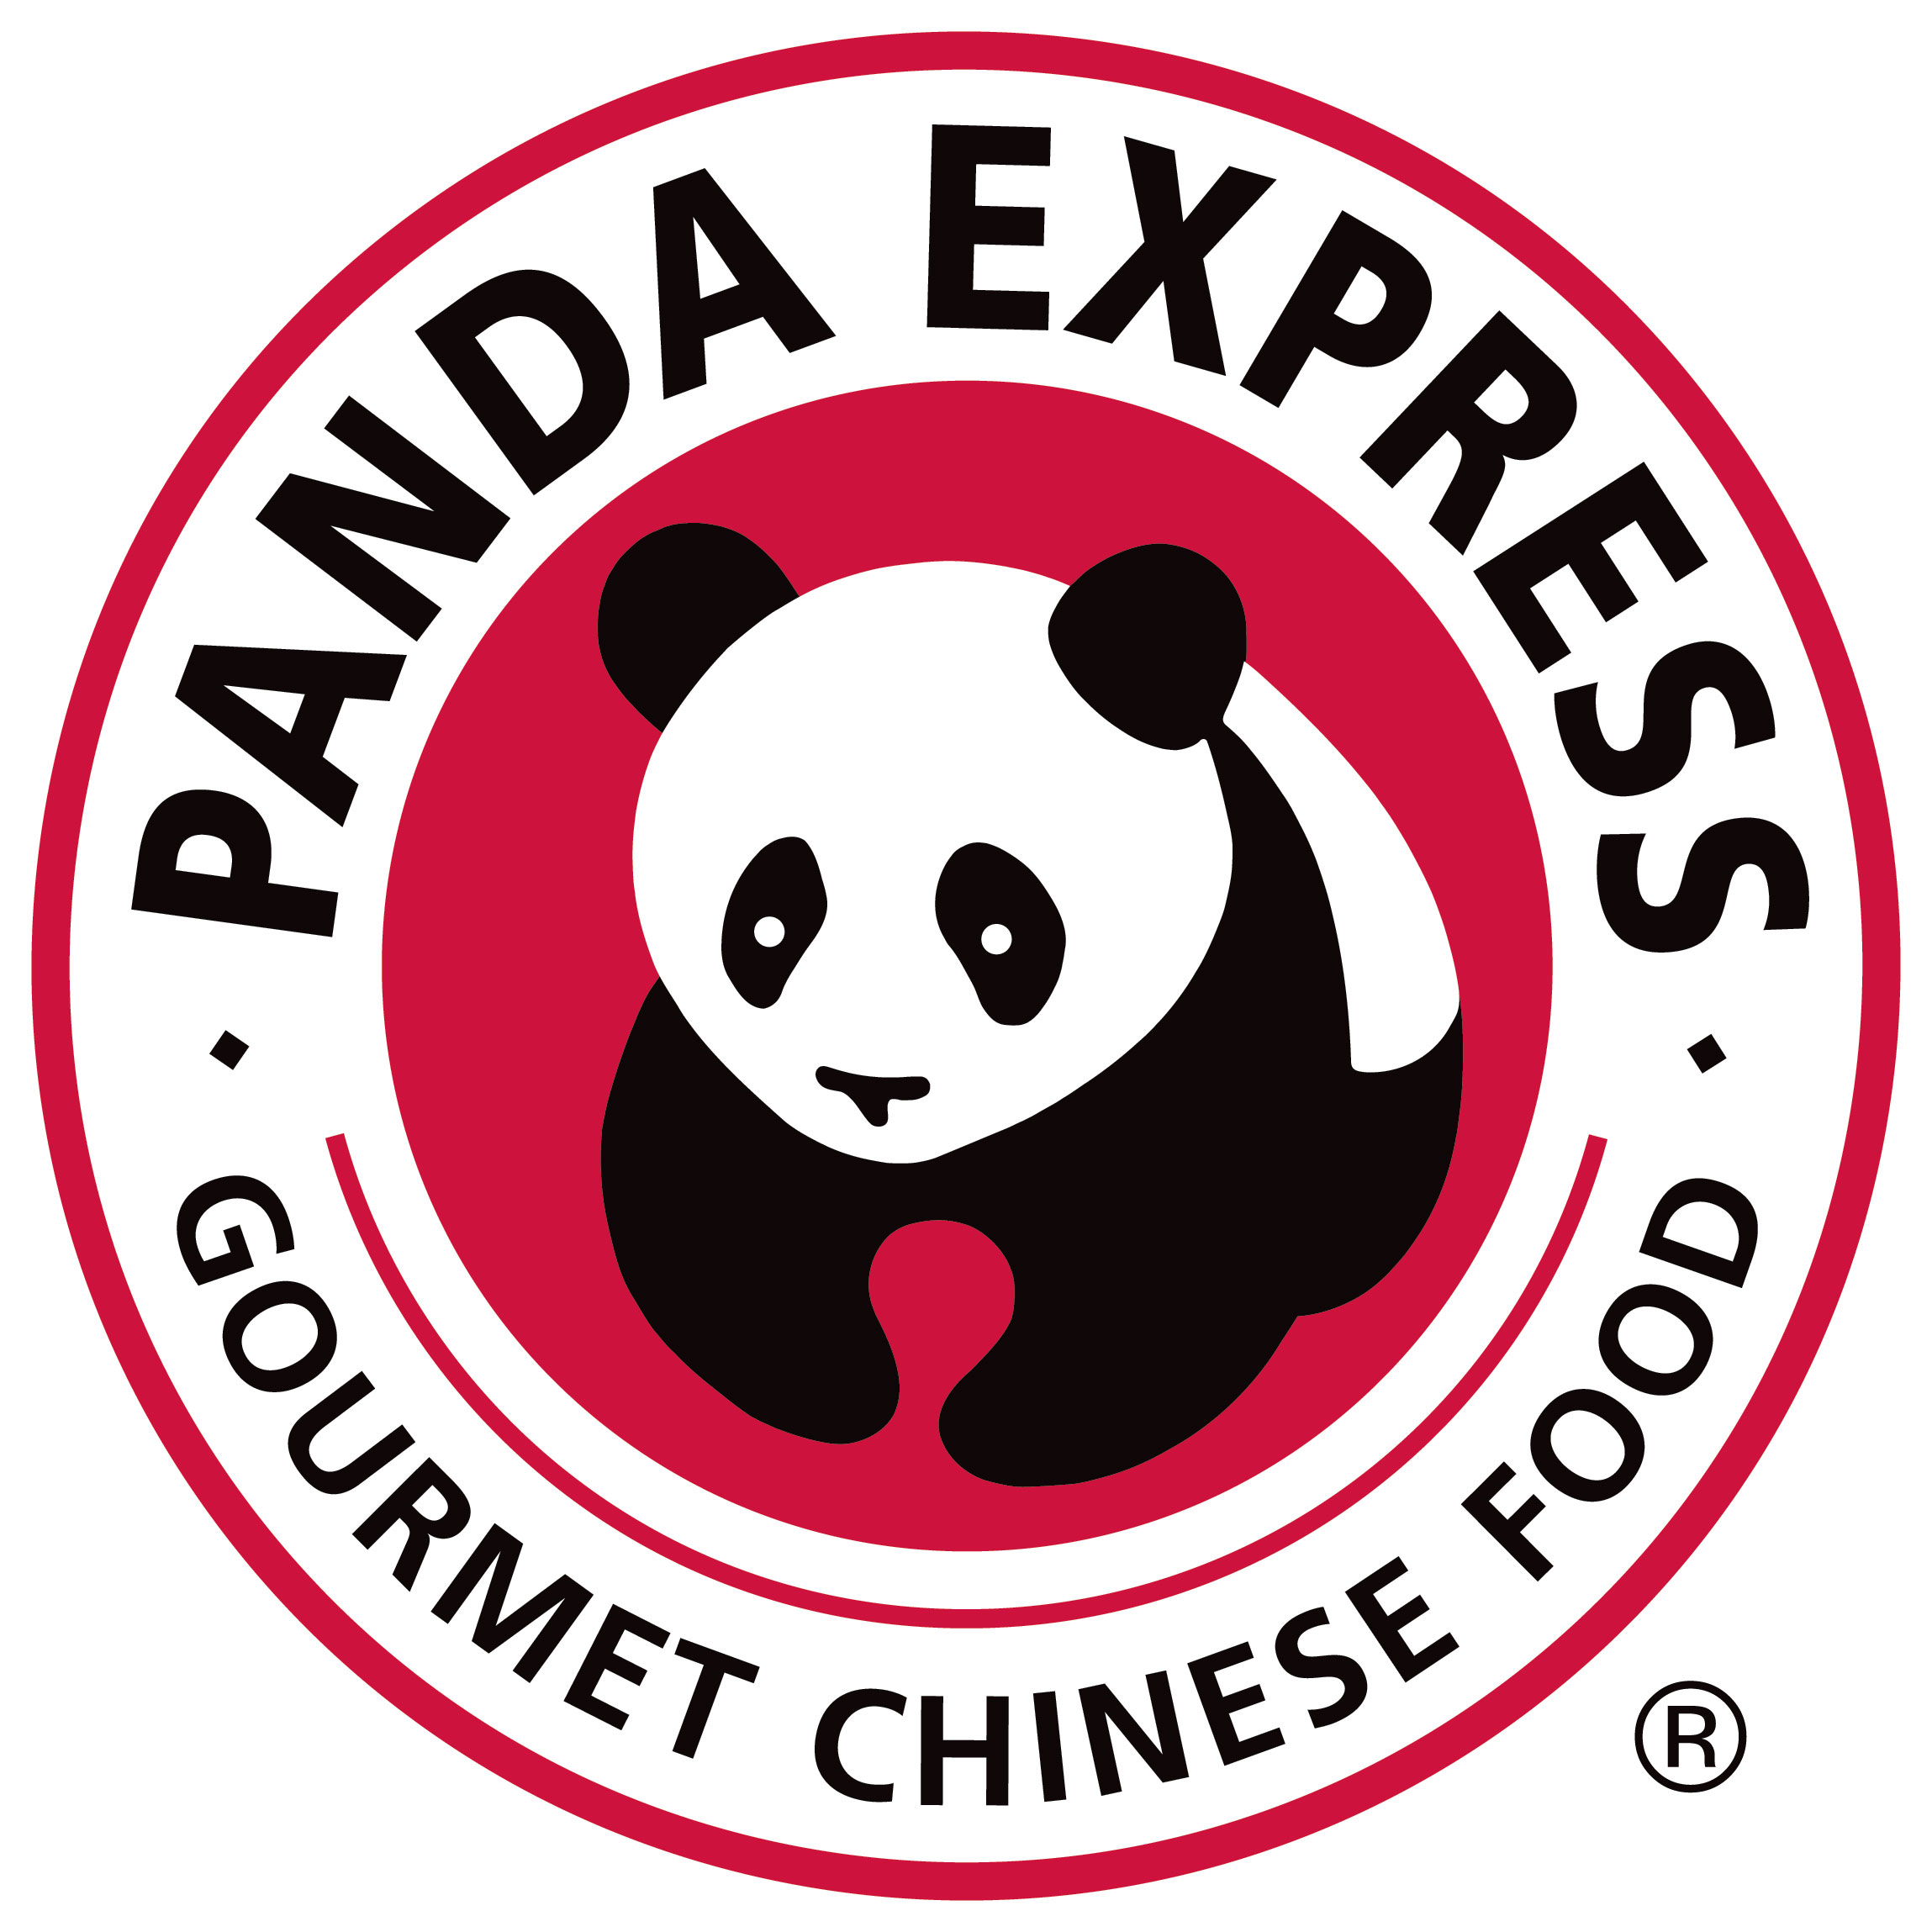 Panda express freebies